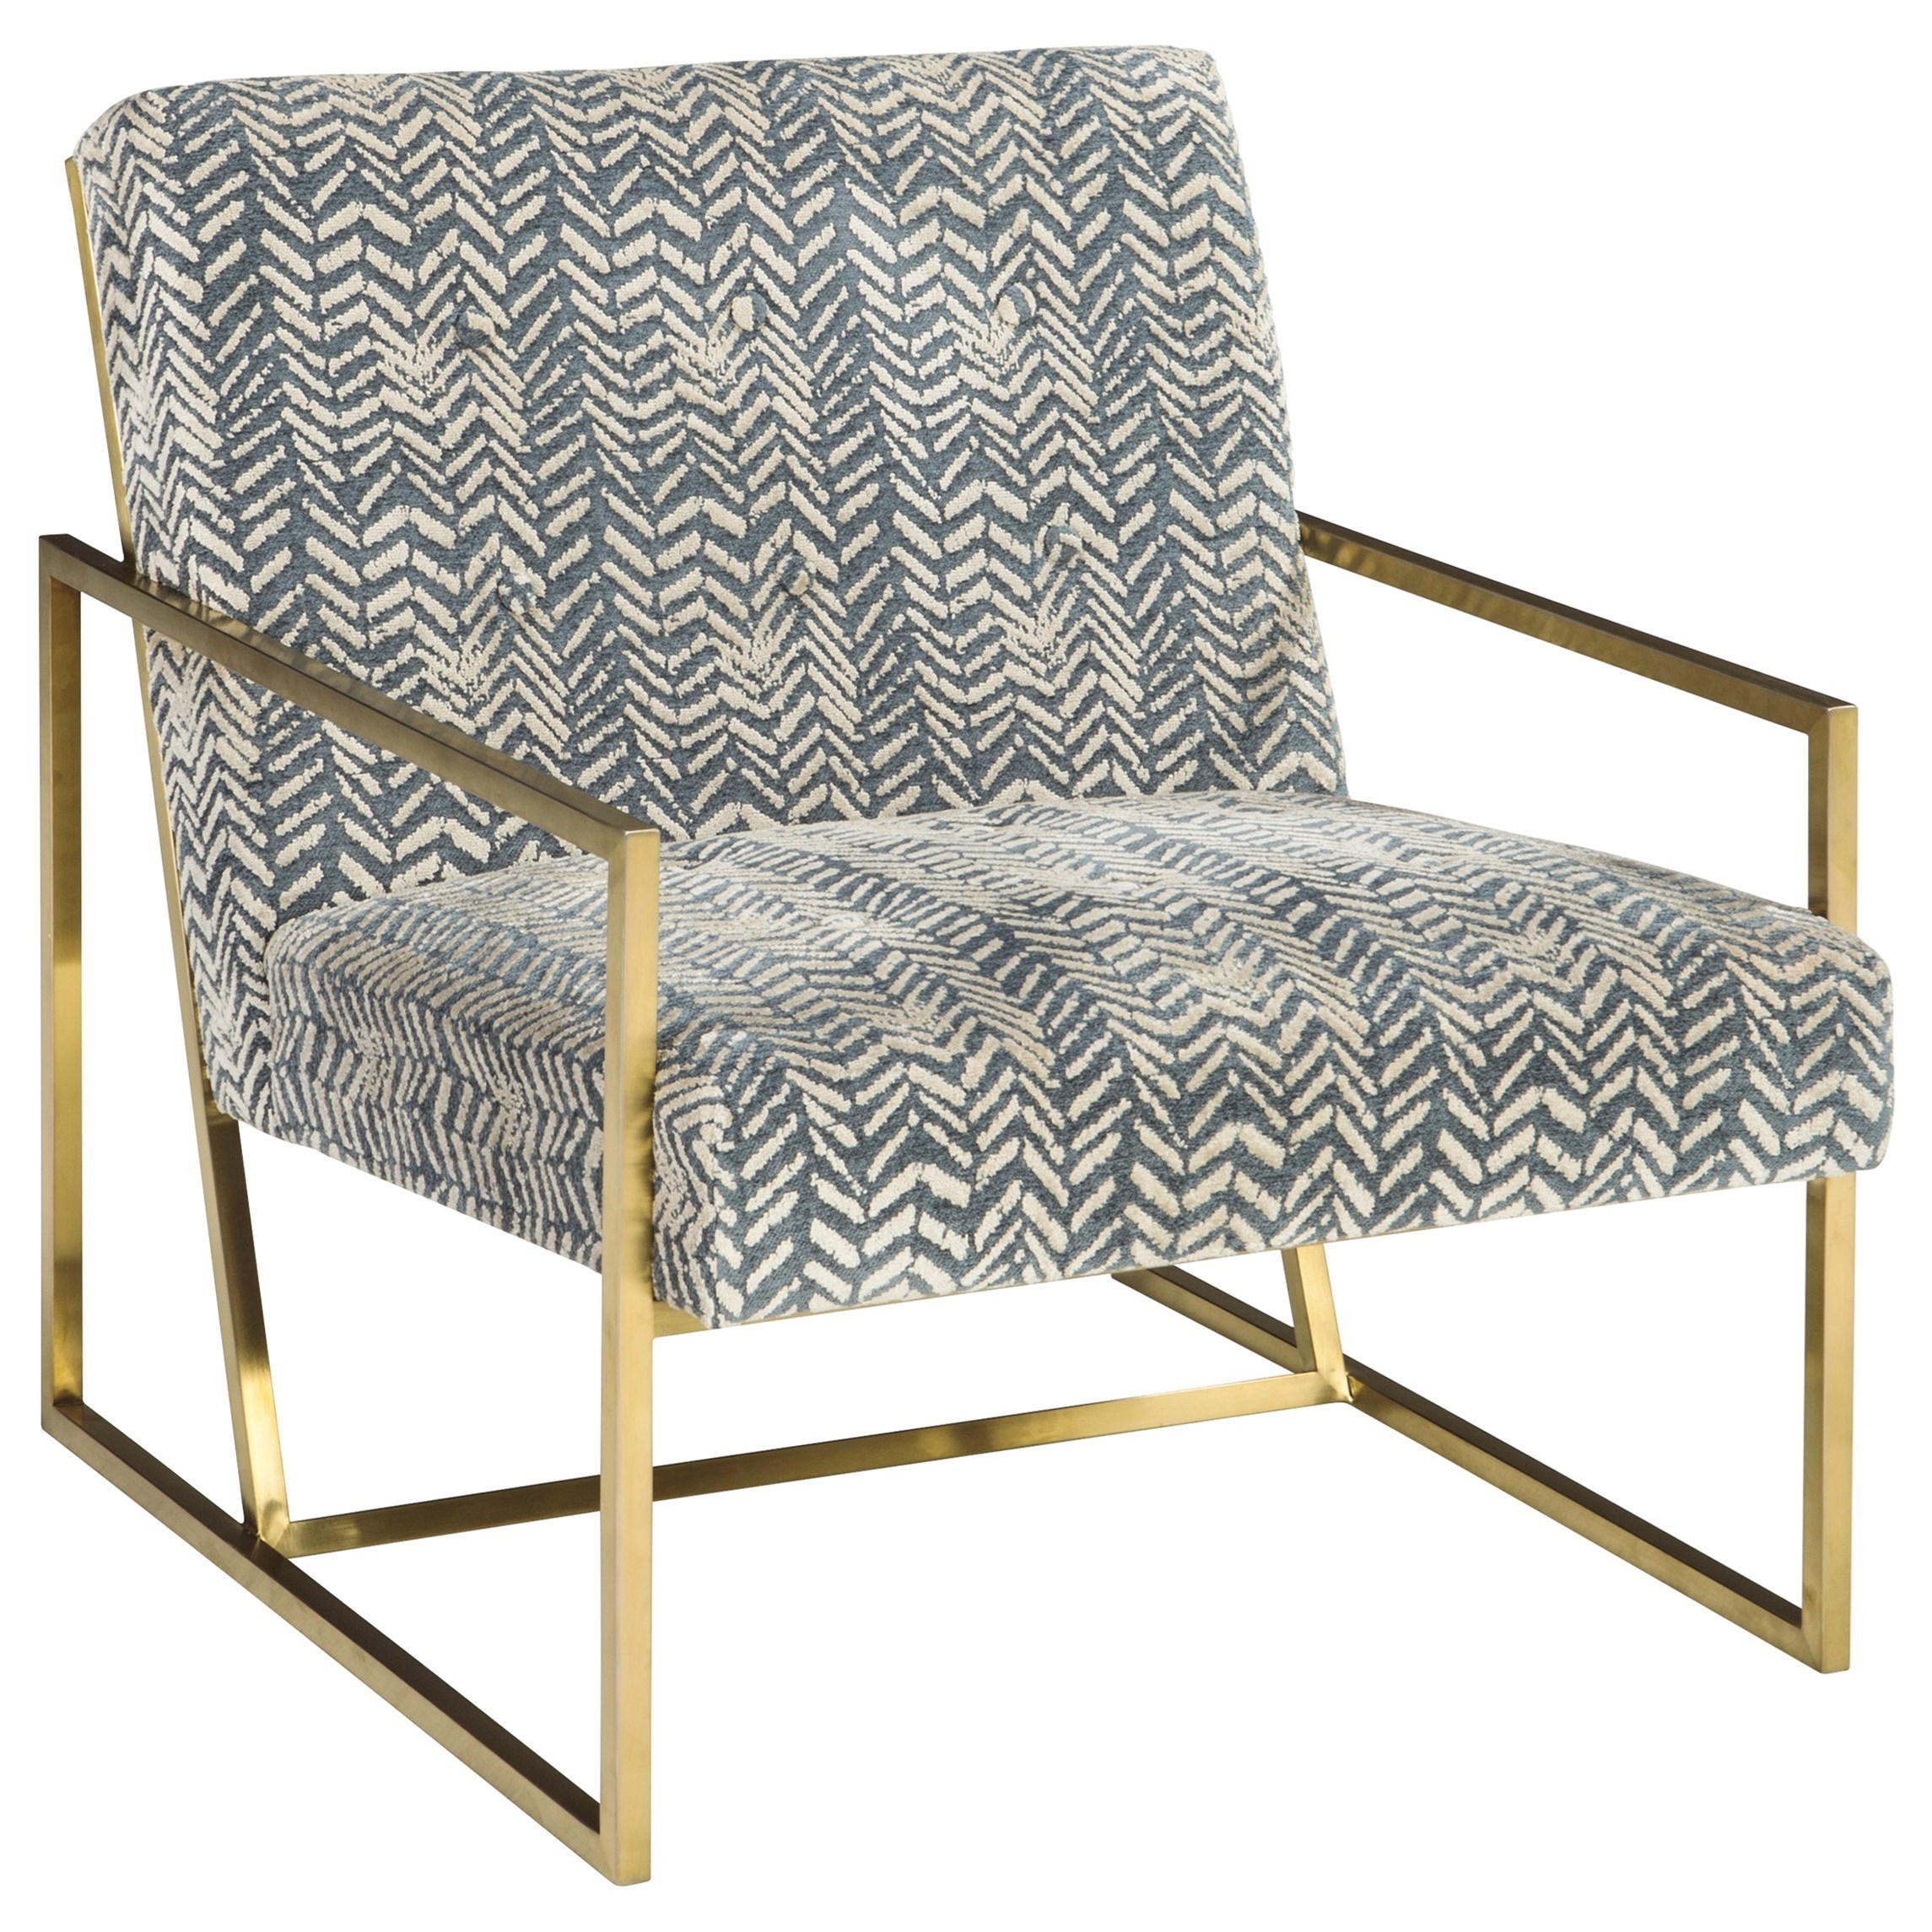 Gold Accent Chairs Signature Design By Ashley Trucker Gold Finish Metal Arm